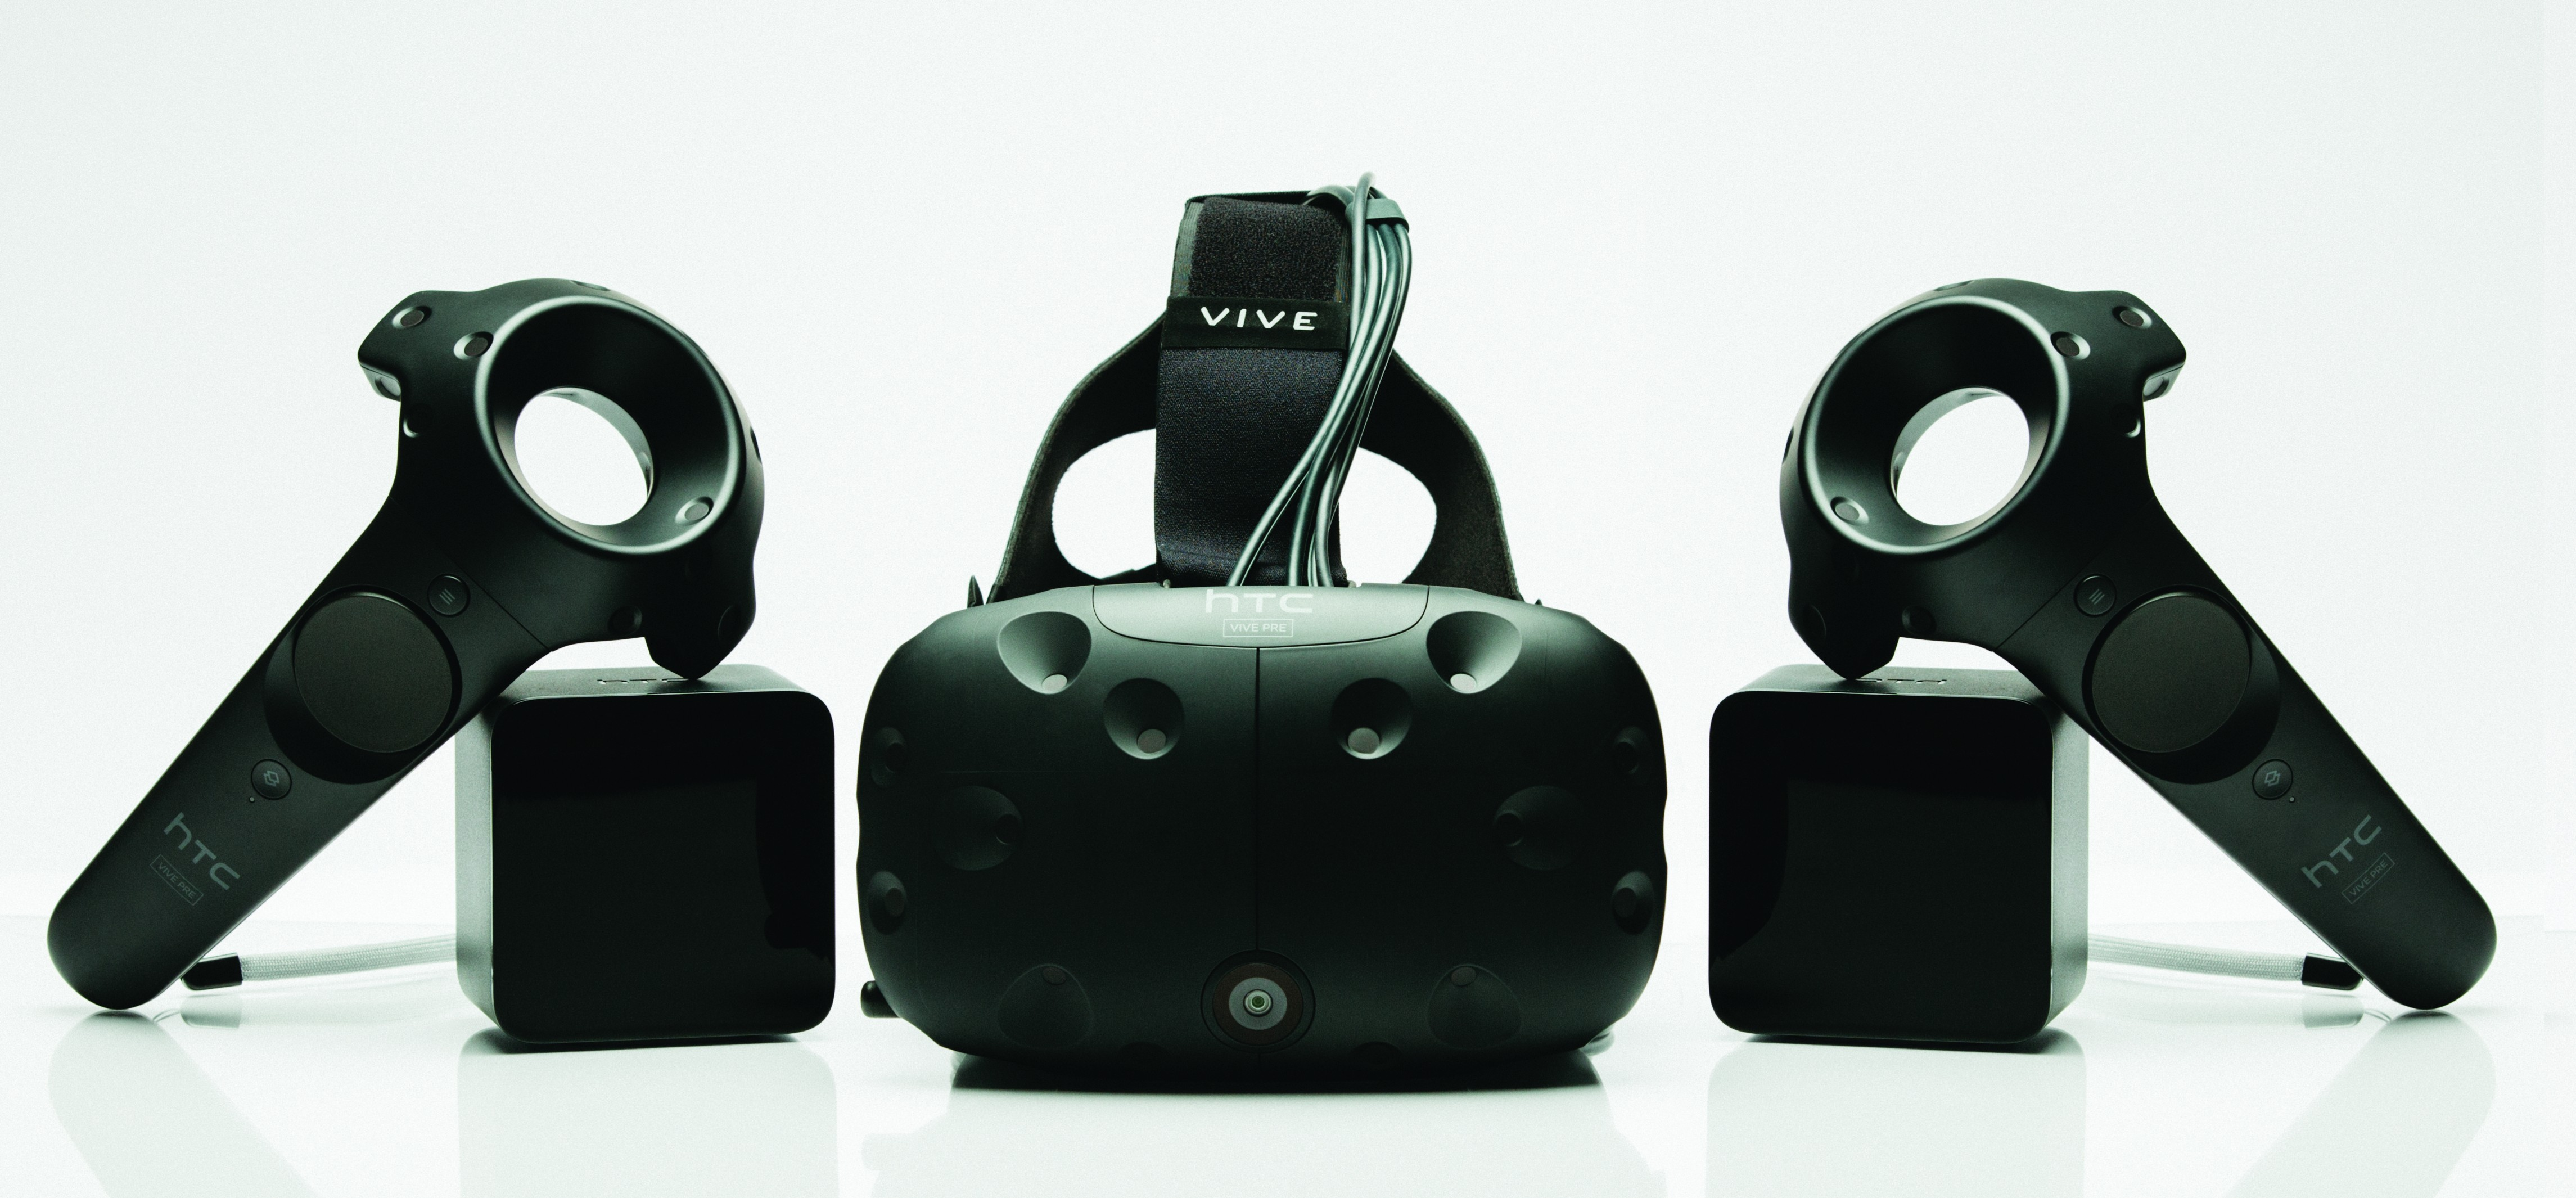 HTC Launches $100m VR Accelerator